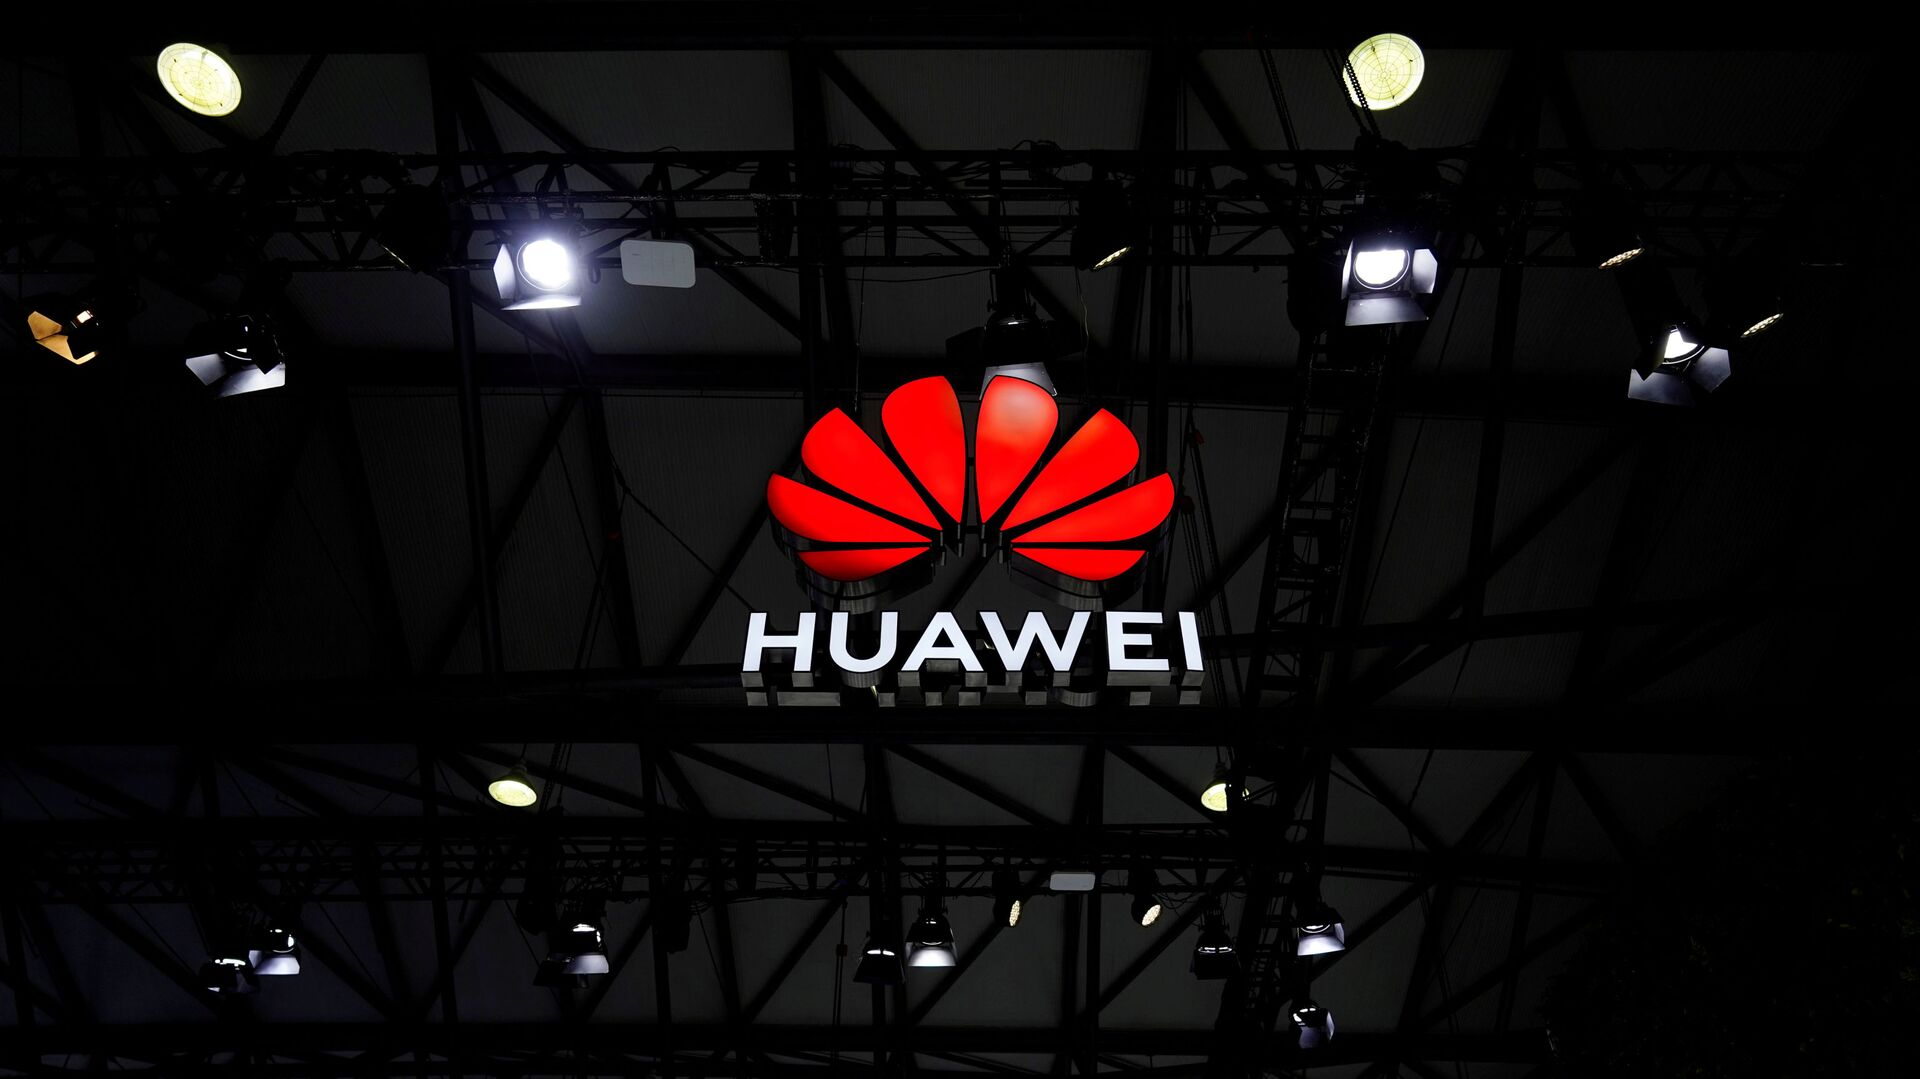 A Huawei logo is seen at the Mobile World Congress (MWC) in Shanghai, China February 23, 2021 - Sputnik International, 1920, 28.07.2021